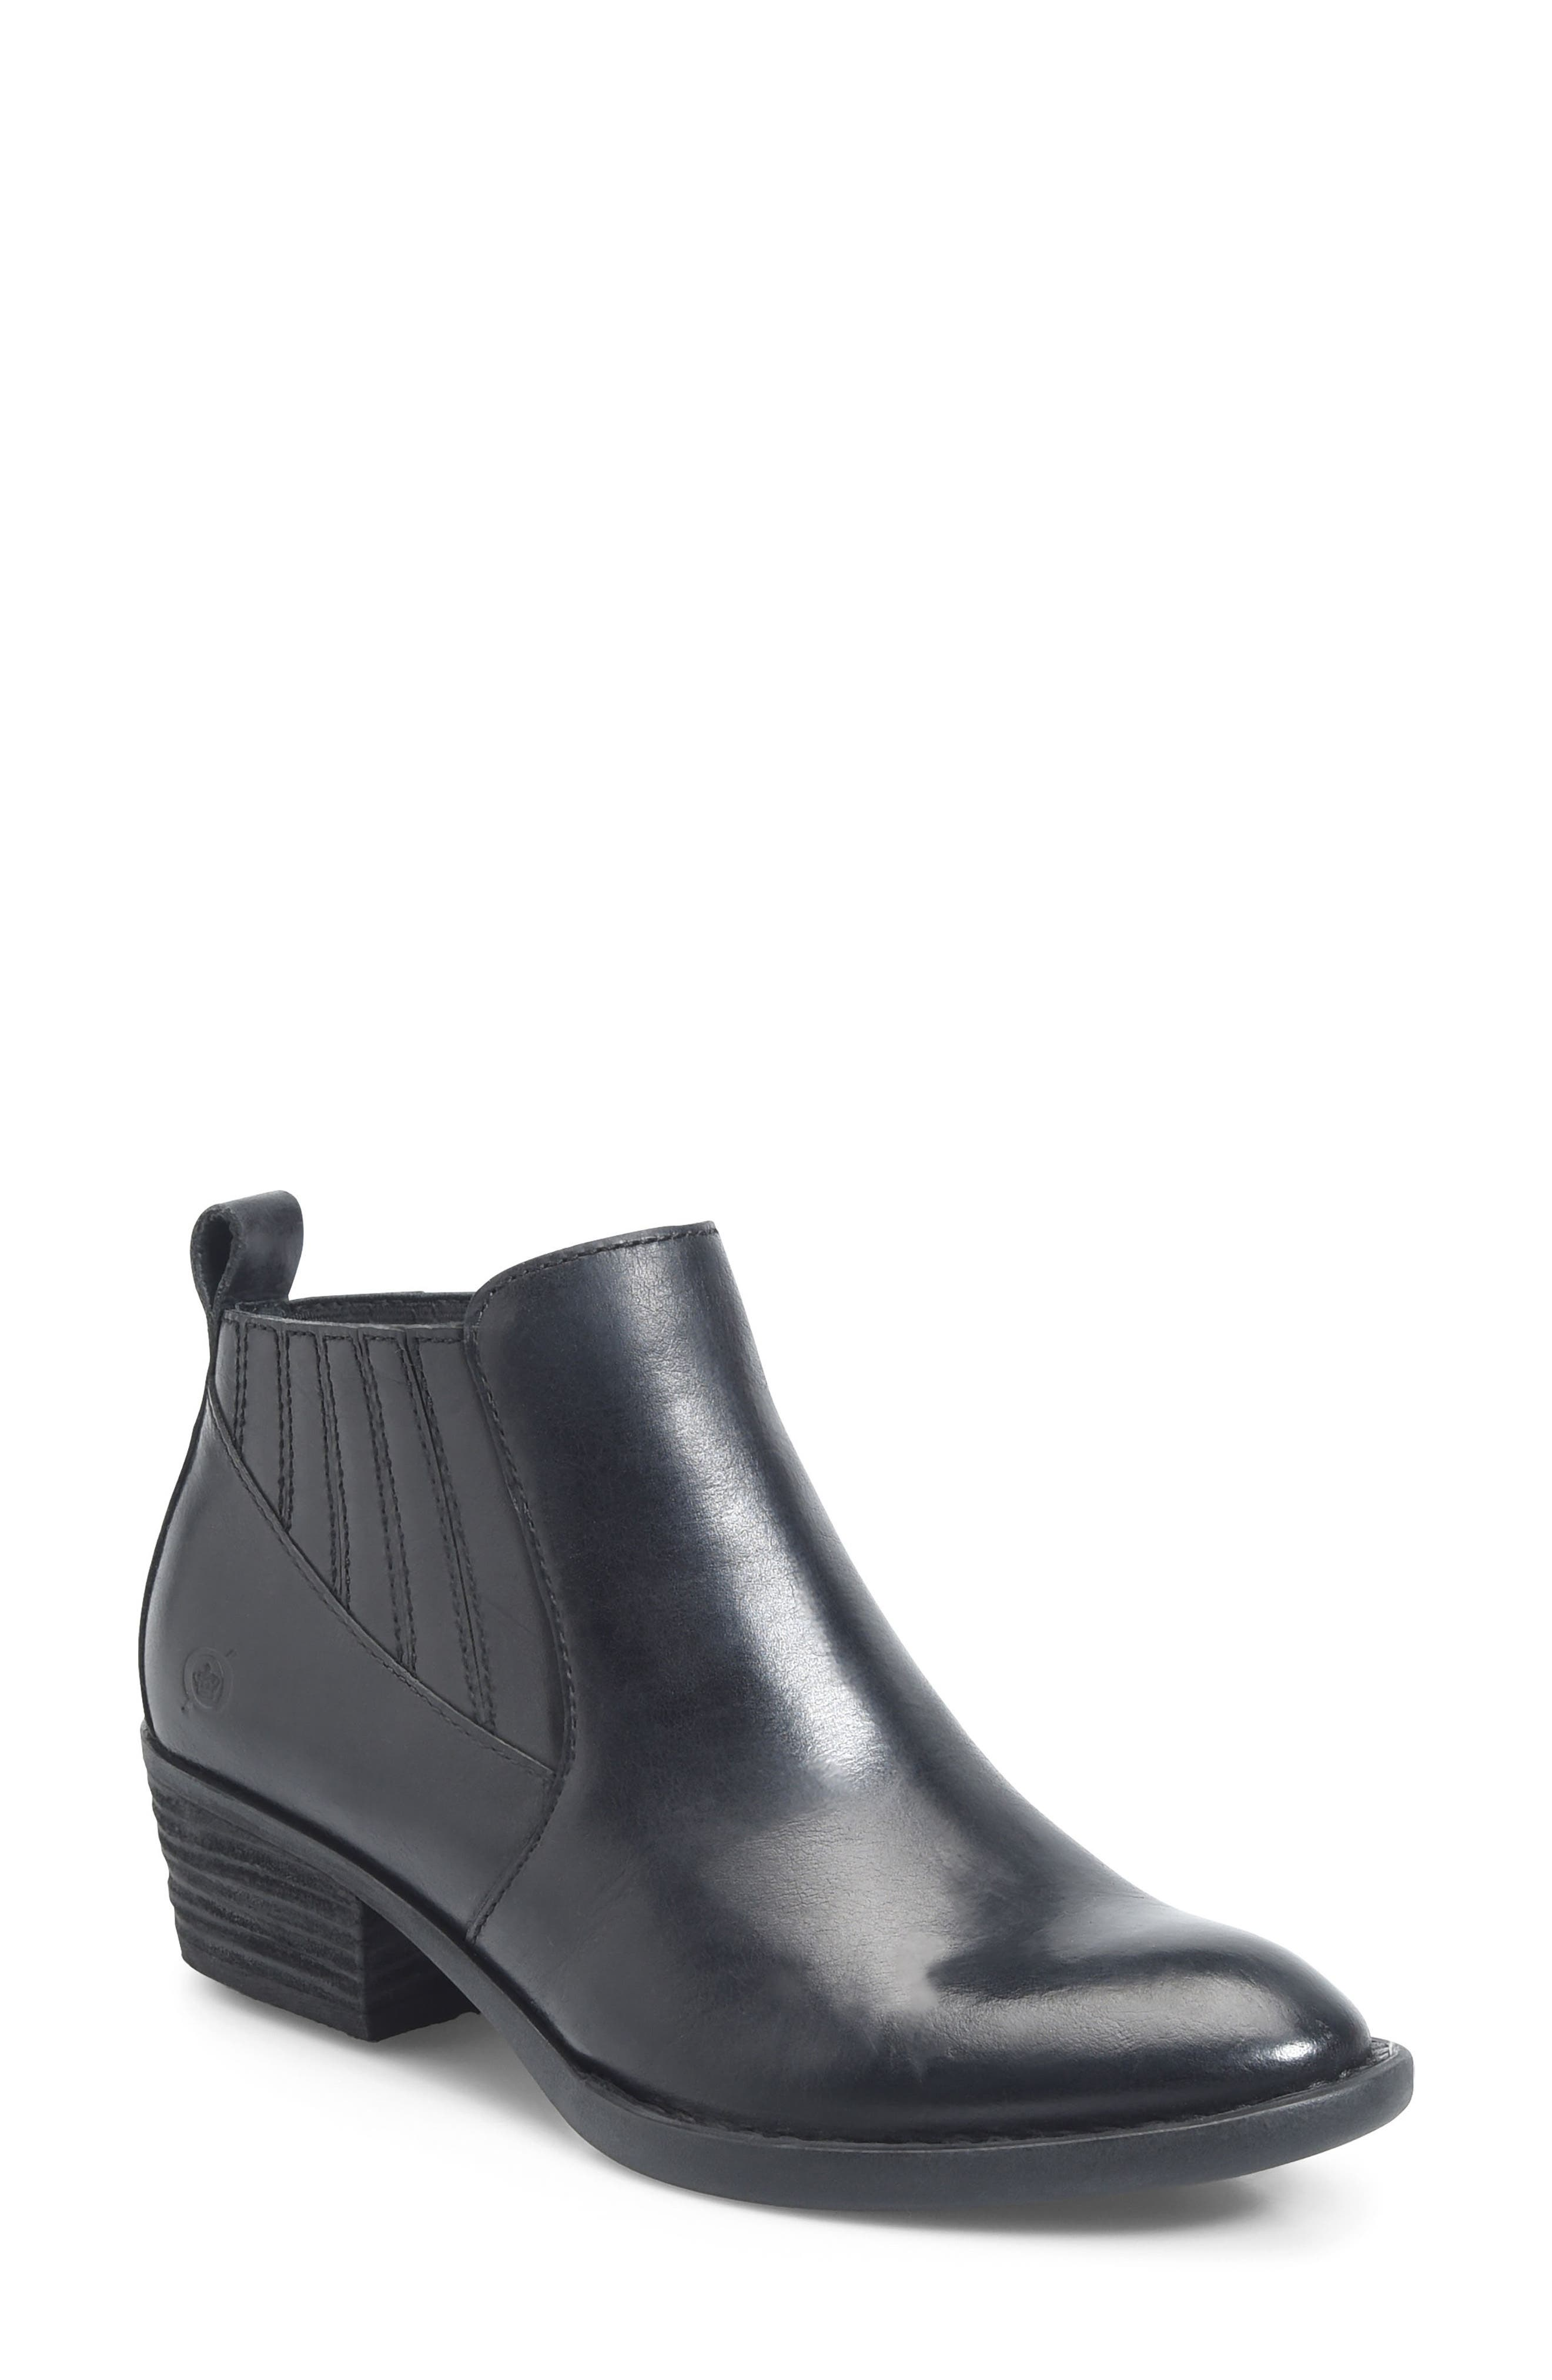 Beebe Bootie,                             Main thumbnail 1, color,                             001